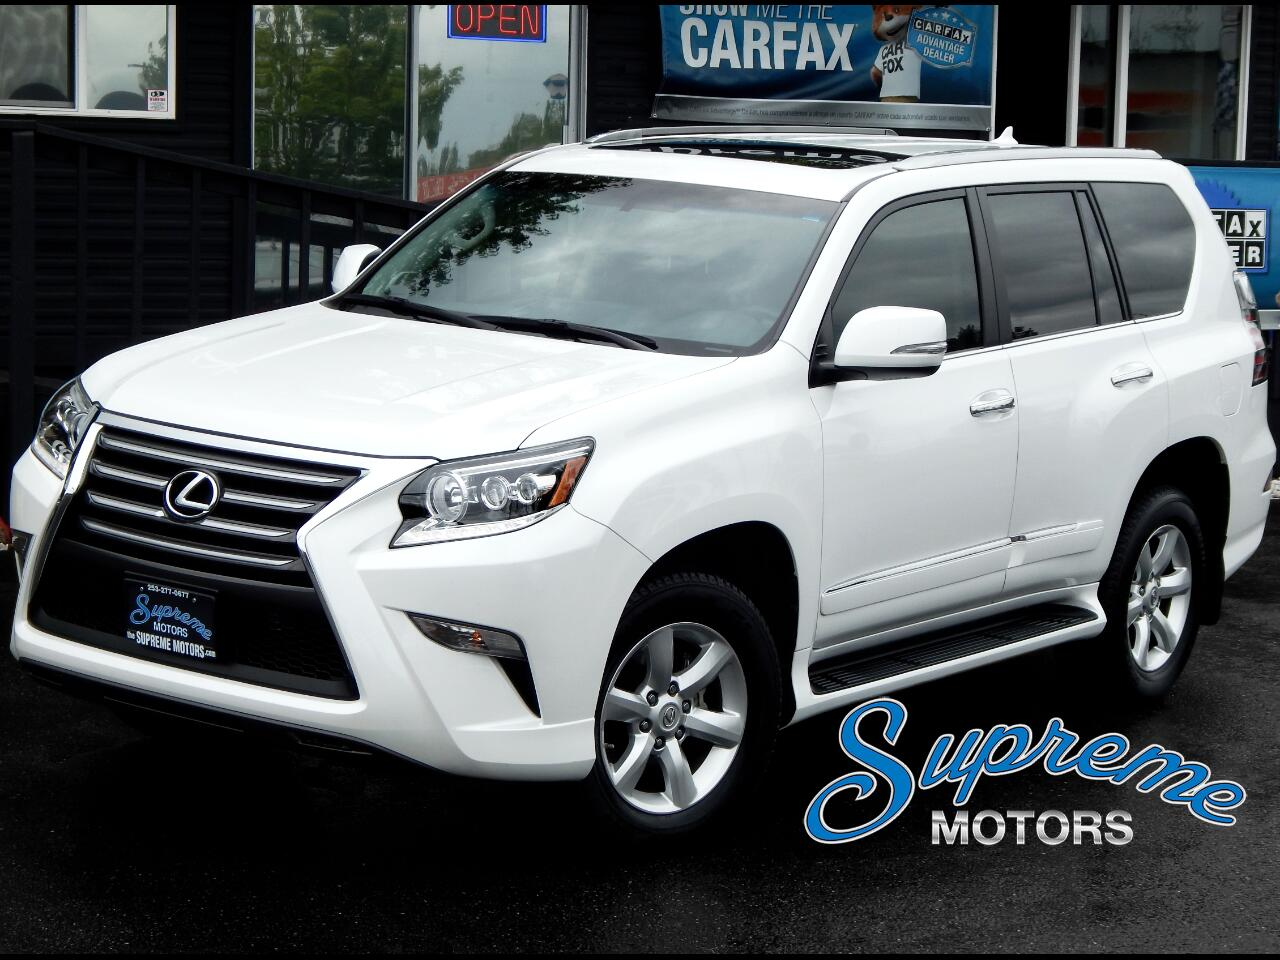 2015 Lexus GX 460 AWD, 3rd Row, Premium Pkg, Heat/AC Seats, LOADED